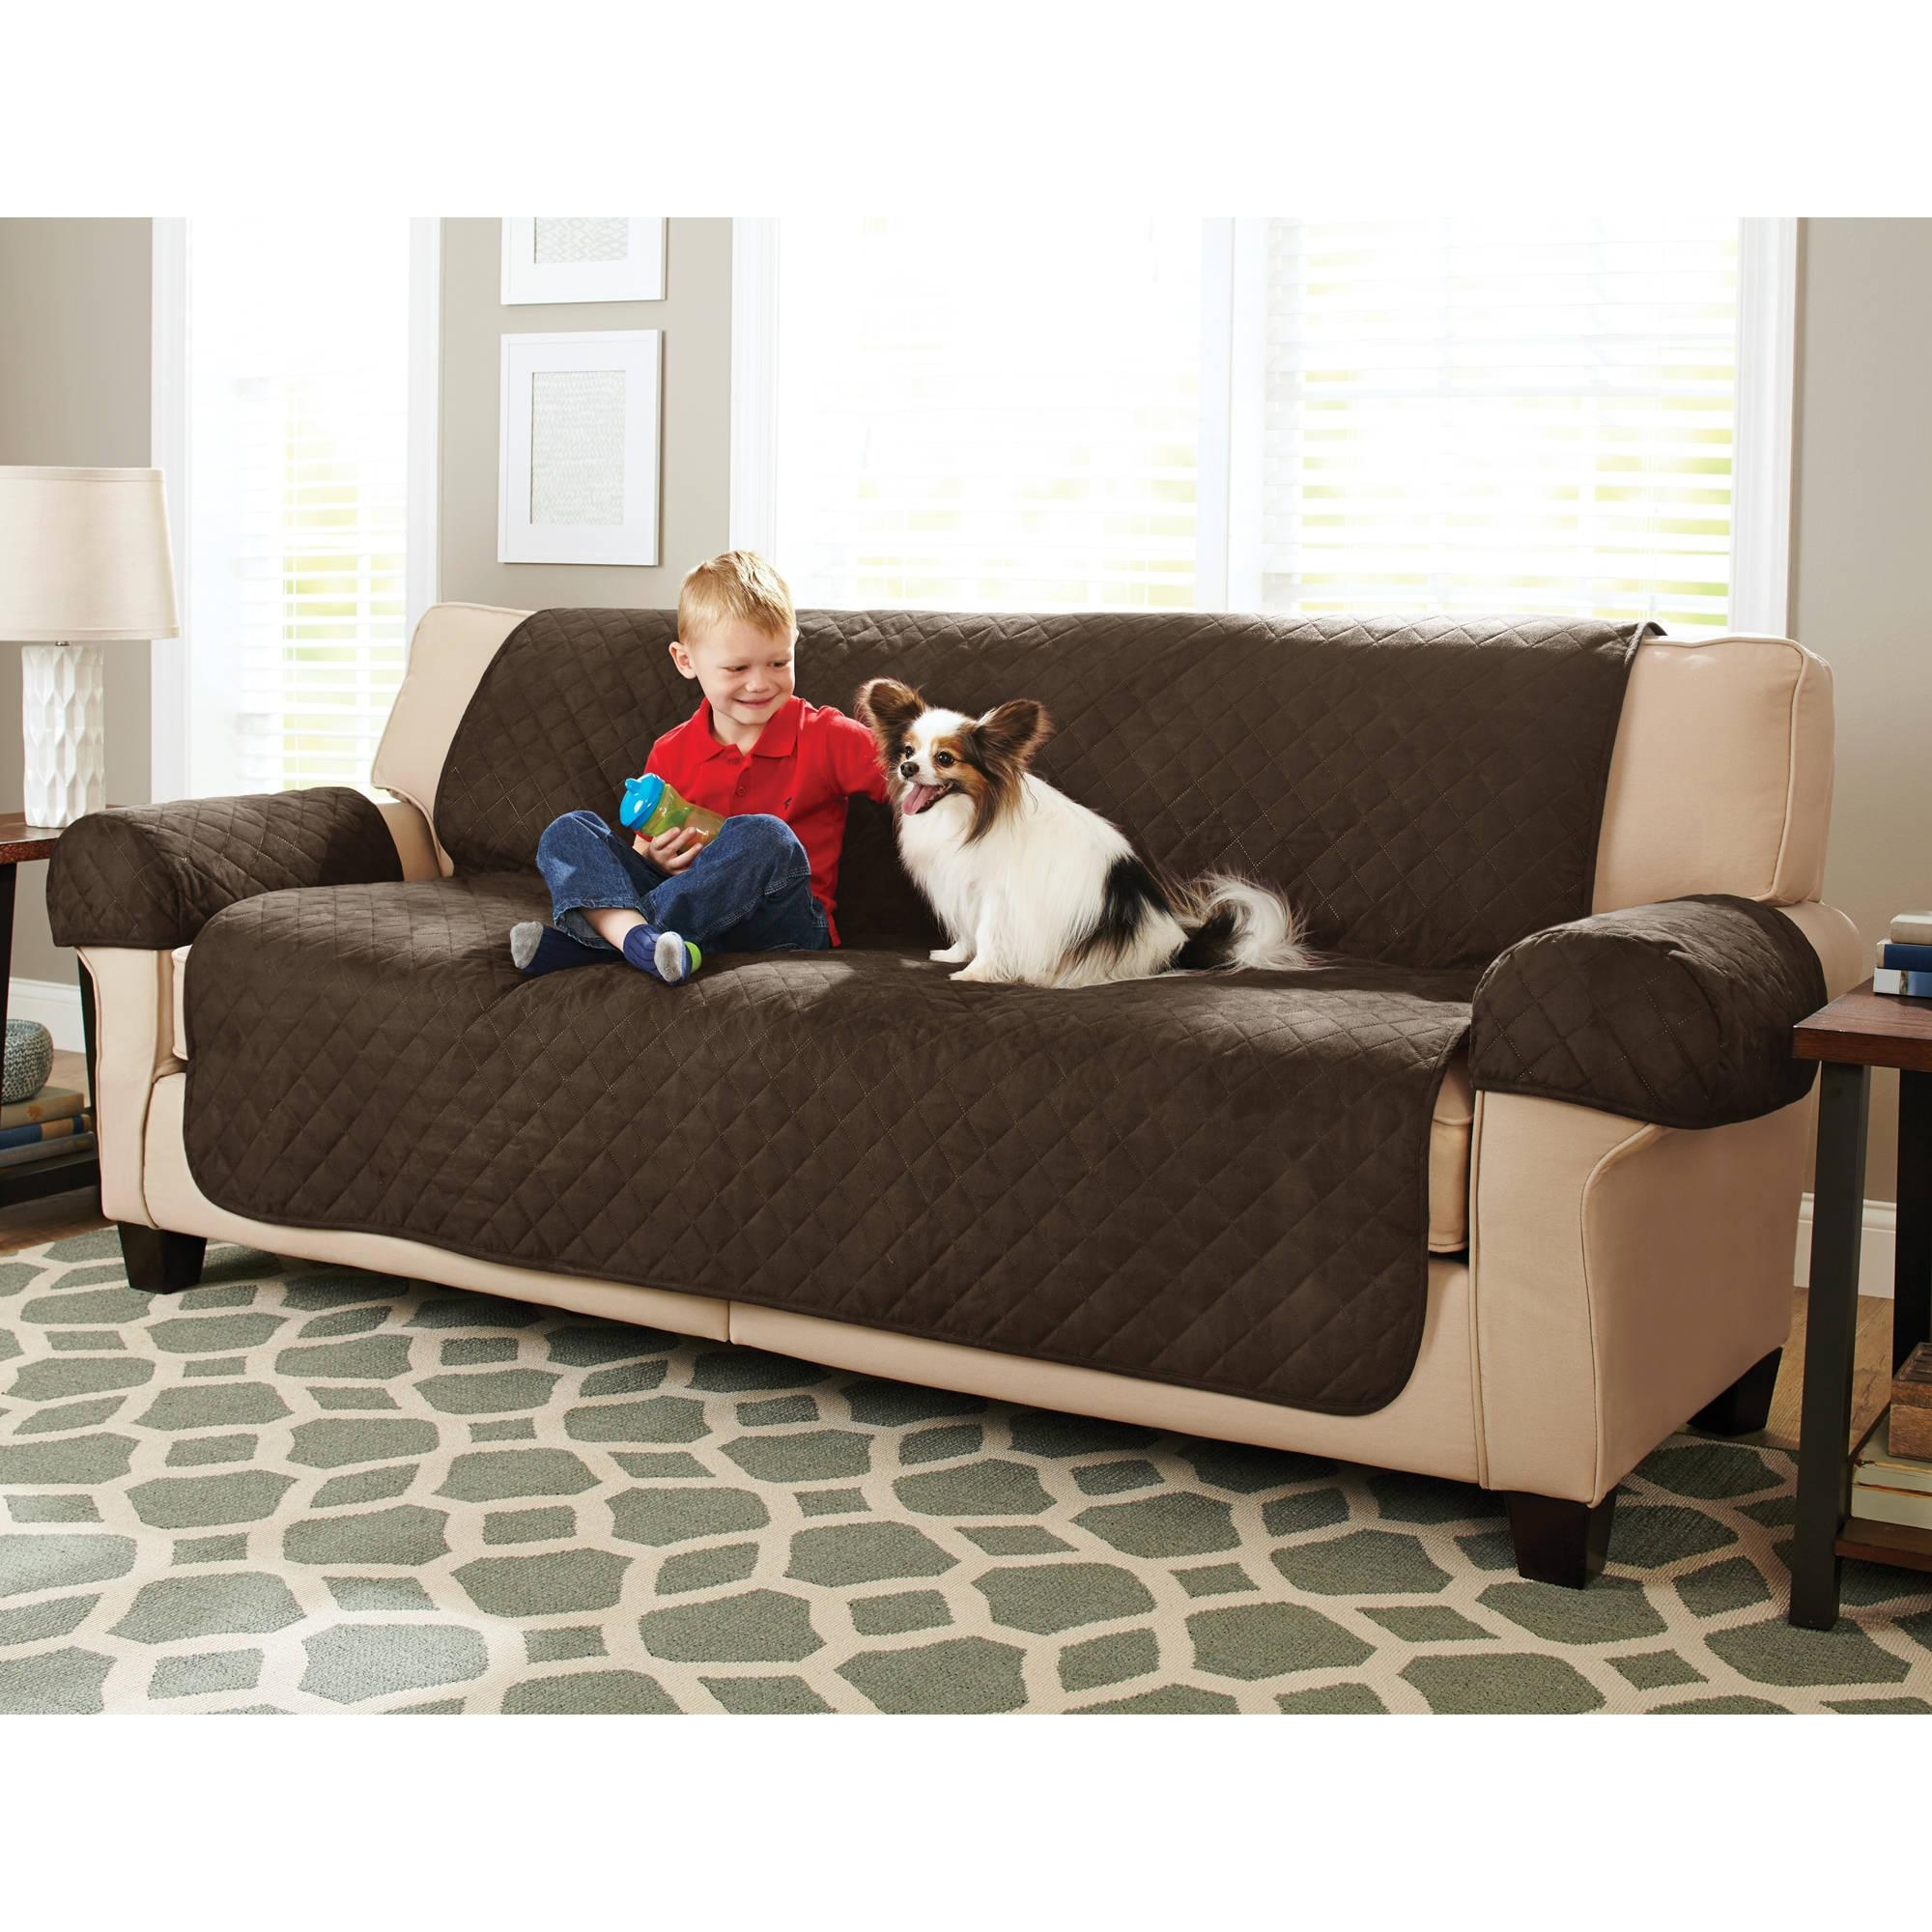 Decor: Fascinating Sofa Covers Walmart For Alluring Furniture Throughout 3 Piece Sectional Sofa Slipcovers (Image 2 of 20)